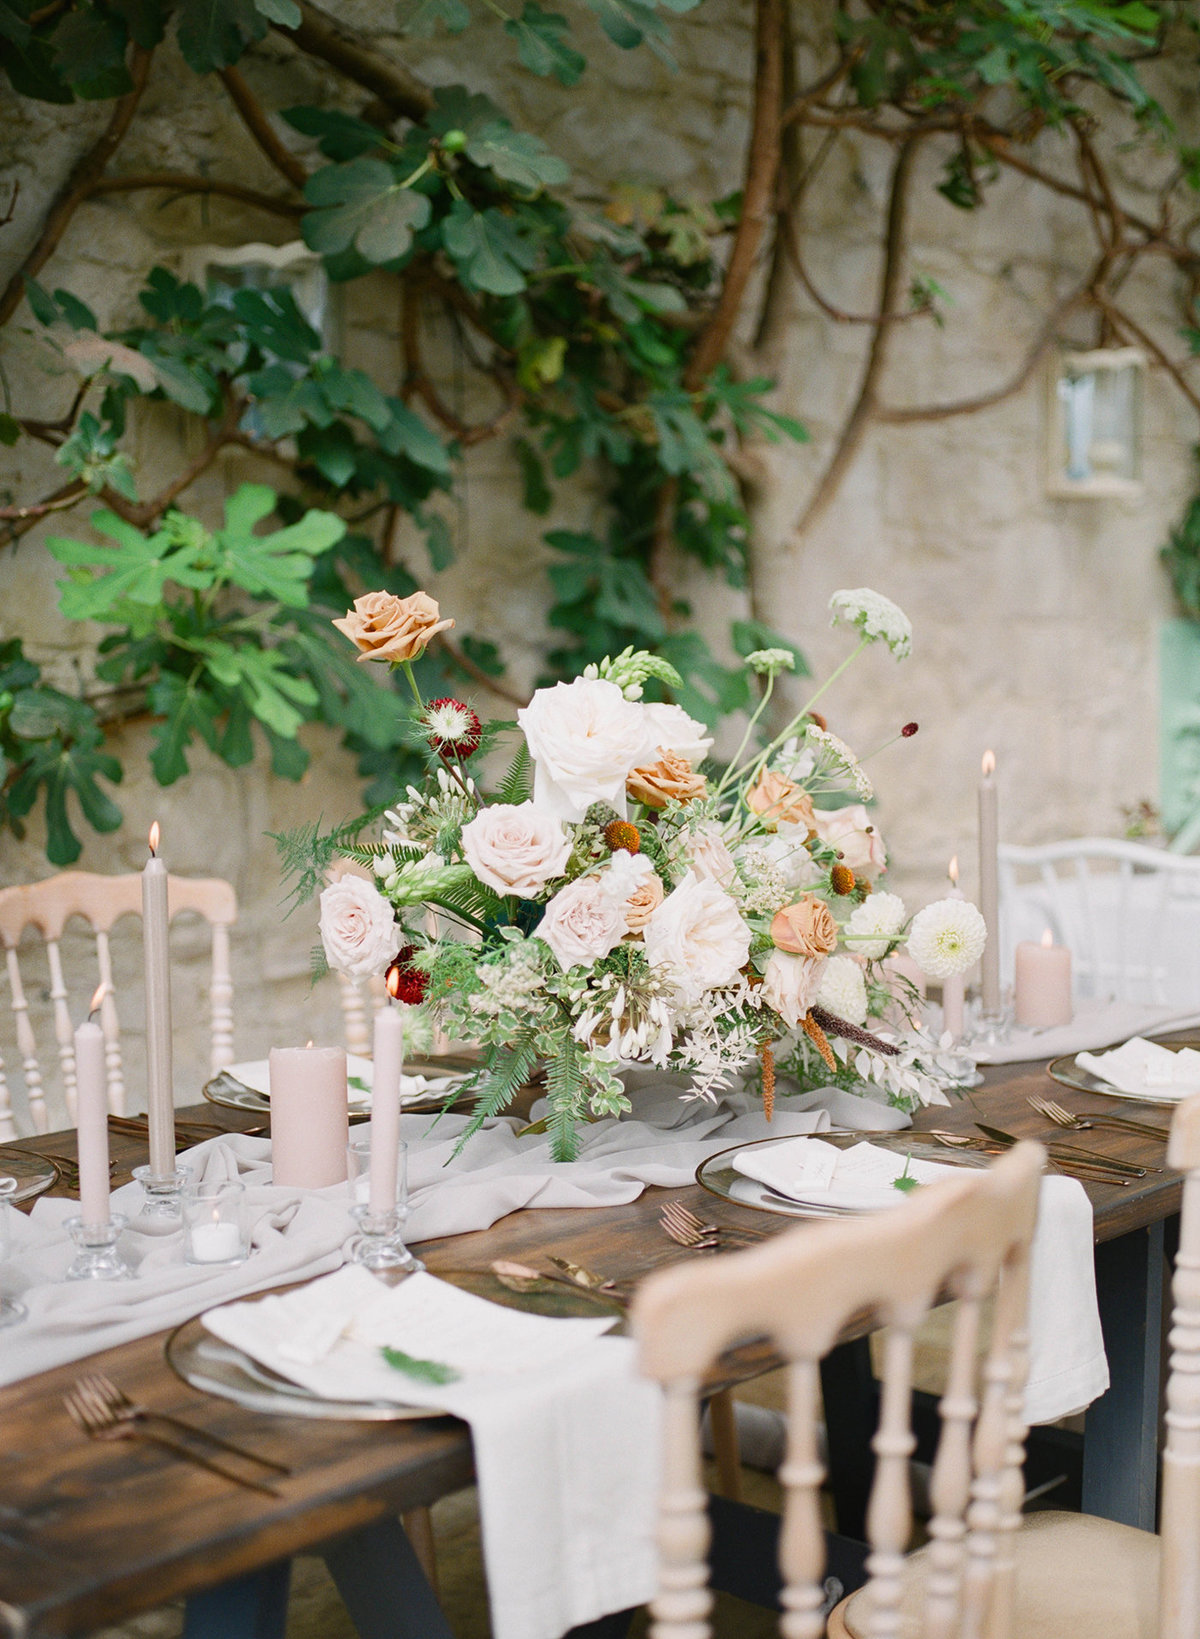 Destination Wedding Photographer - Ireland Editorial - Cliff at Lyons Kildare Ireland - Sarah Sunstrom Photography - 28